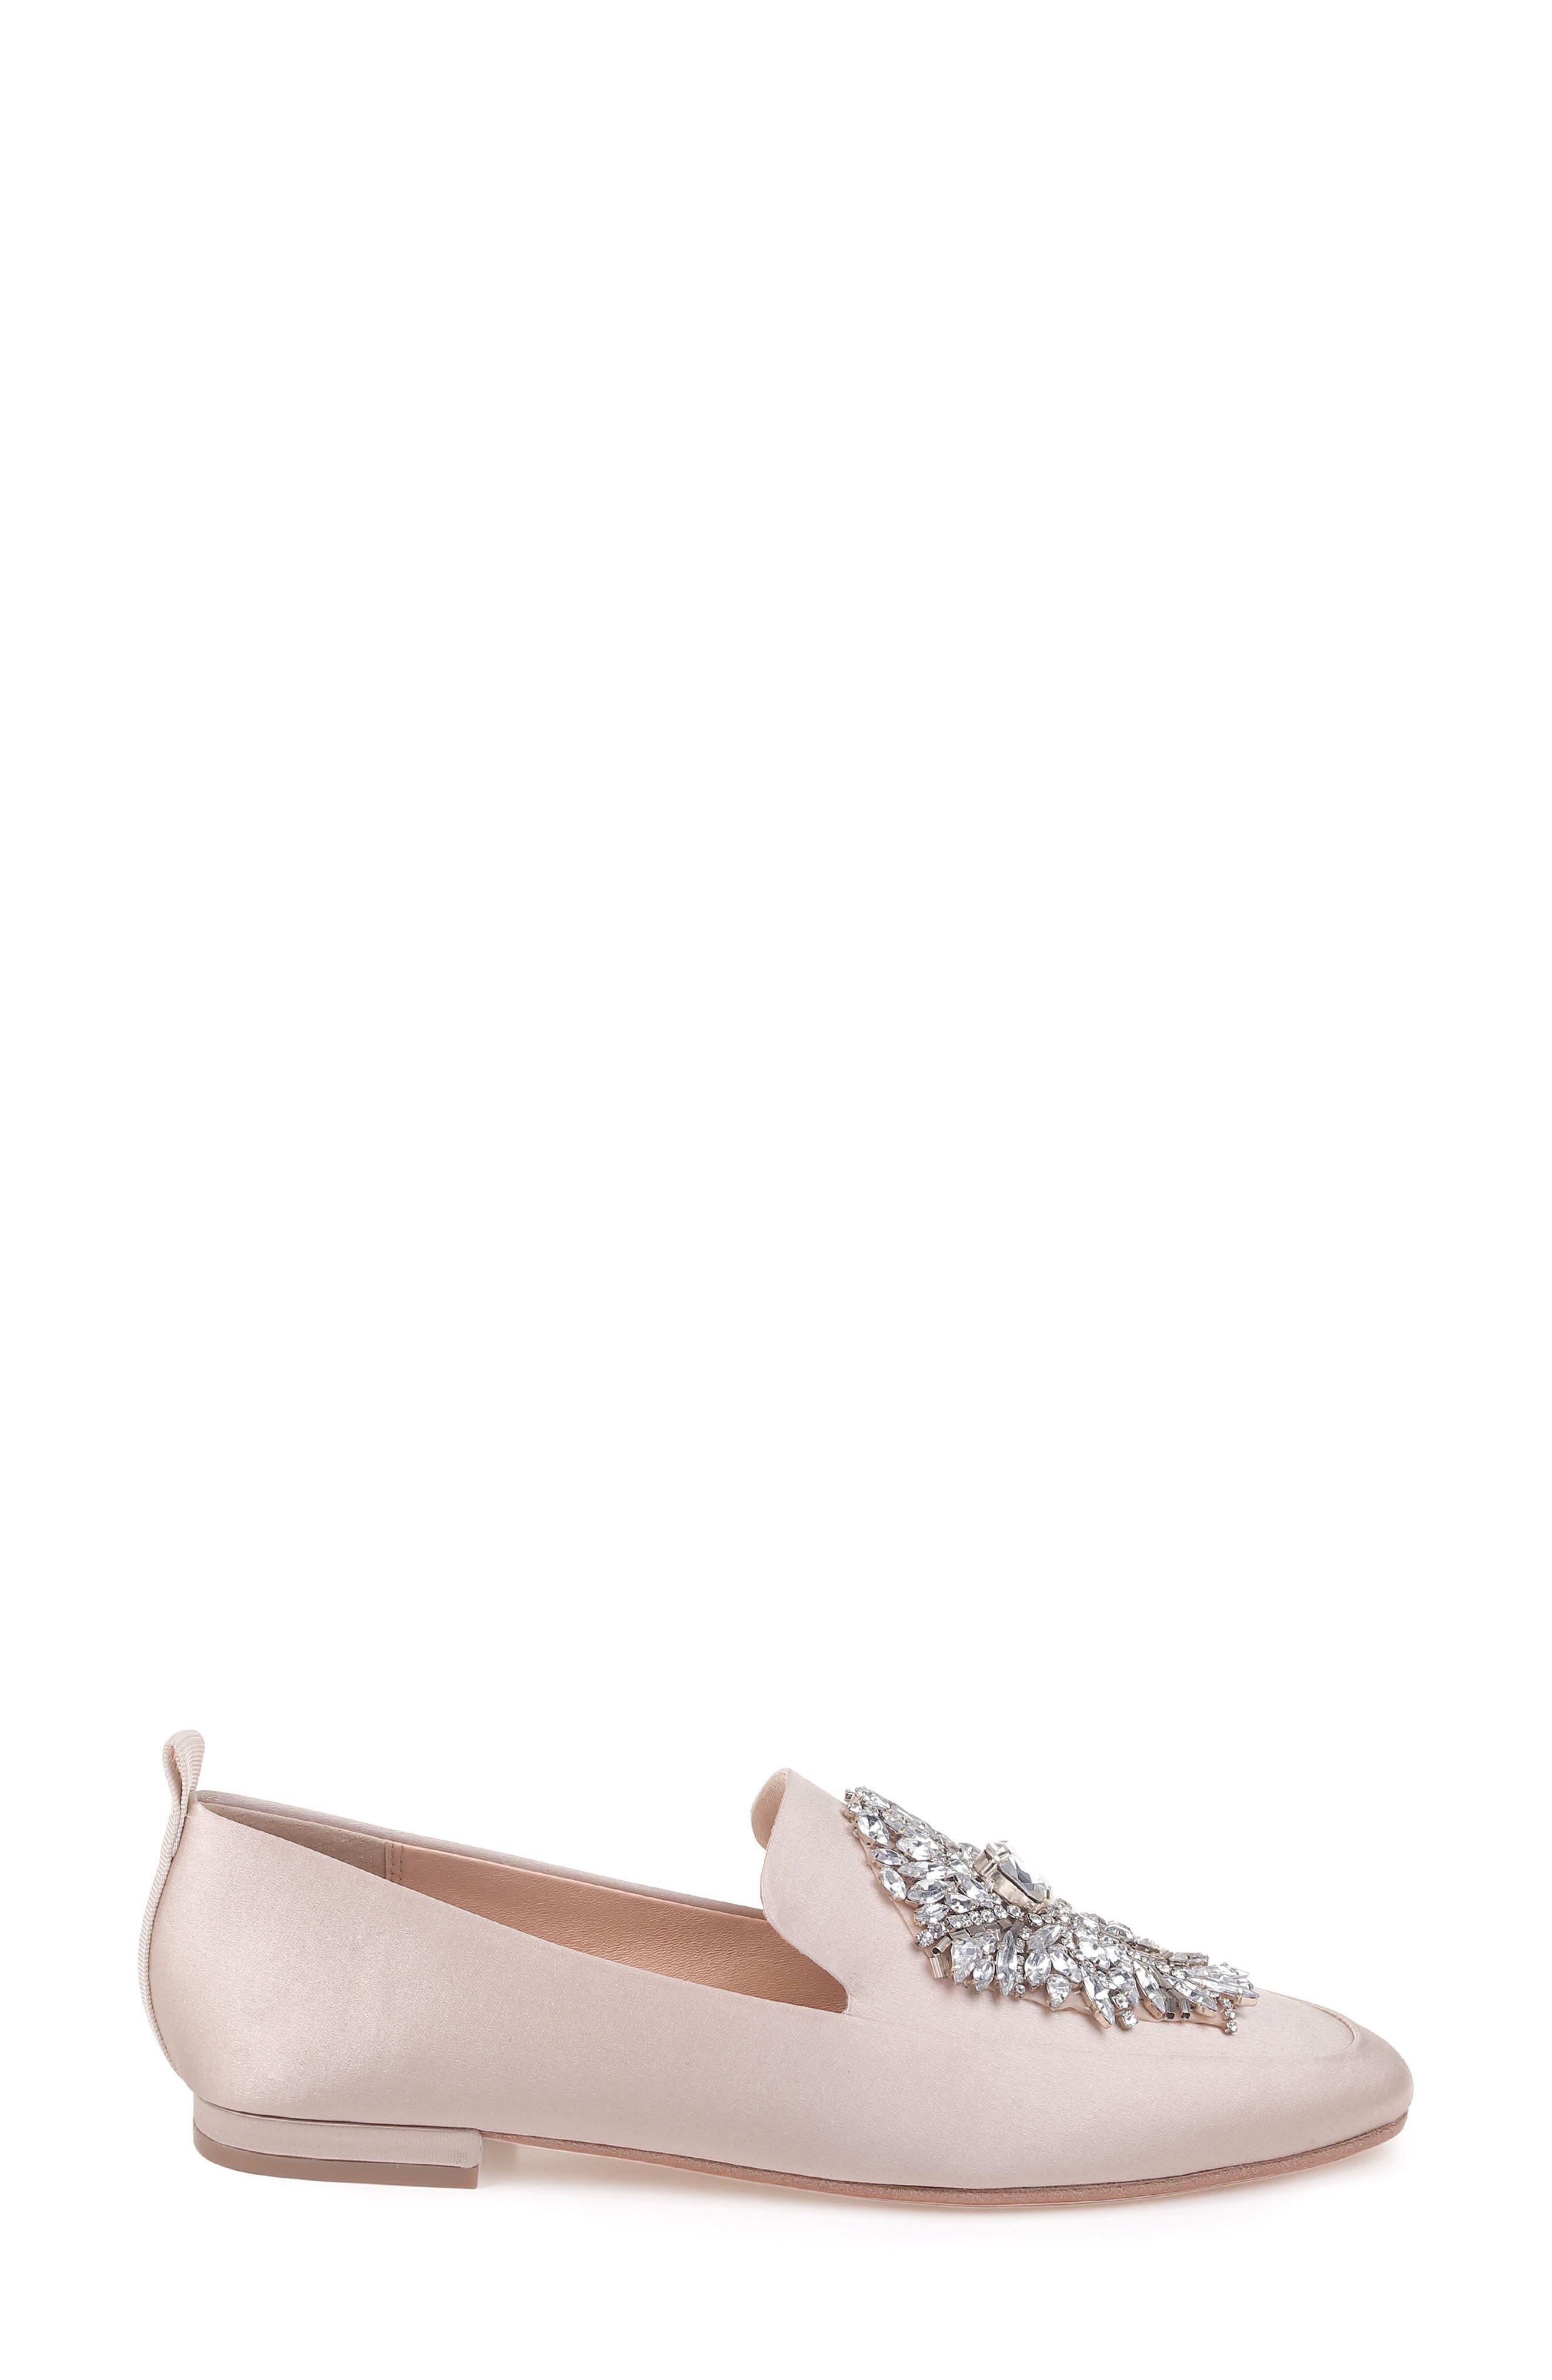 Salma Crystal Embellished Loafer,                             Alternate thumbnail 4, color,                             Nude Satin